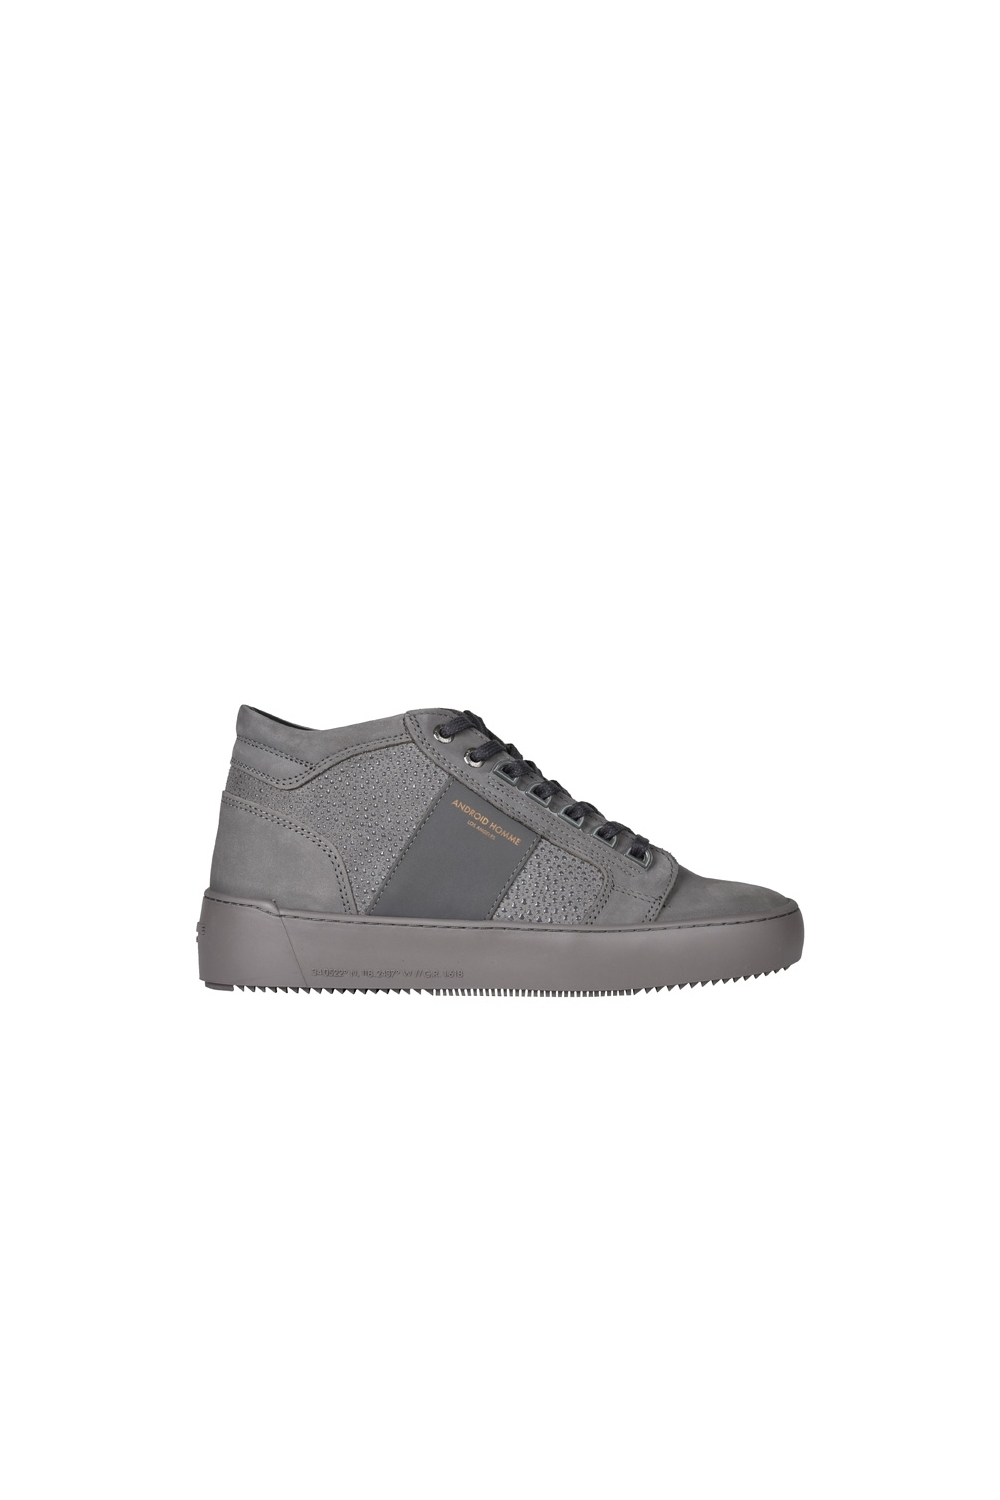 Android Homme Propulsion Mid Grey